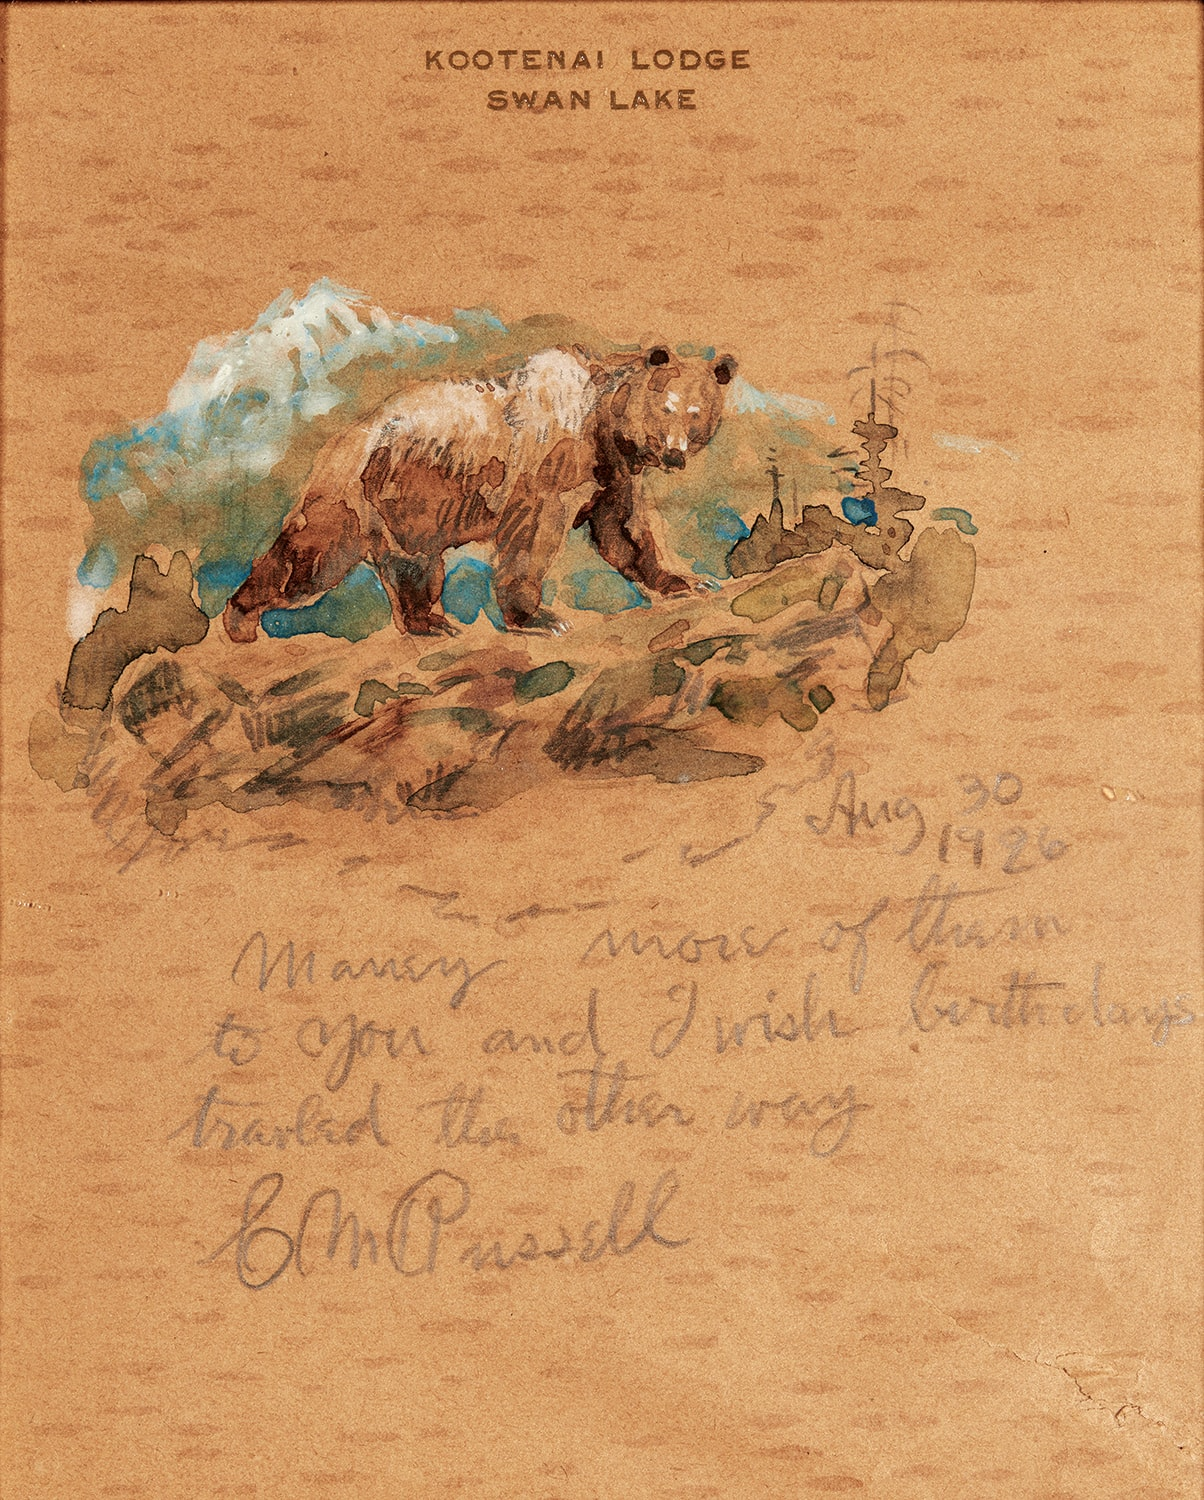 CM Russell illustrated letter